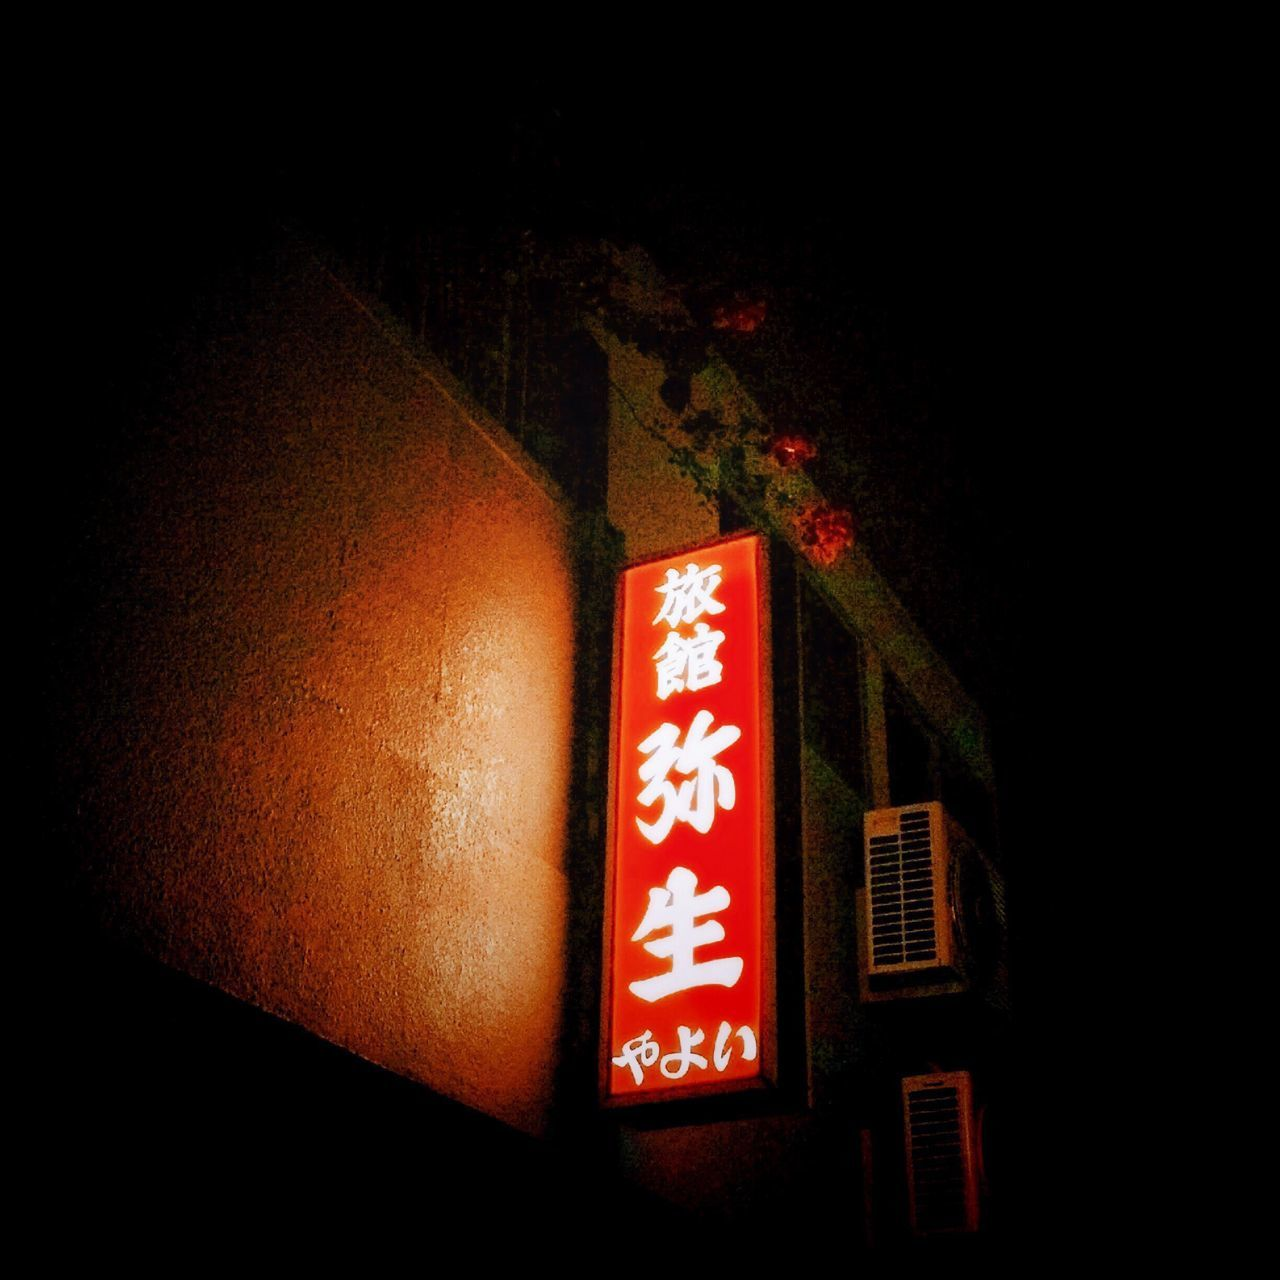 Illuminated Night No People チョンの間 飾り窓 風俗 Adults Only Adult Entertains Okinawa